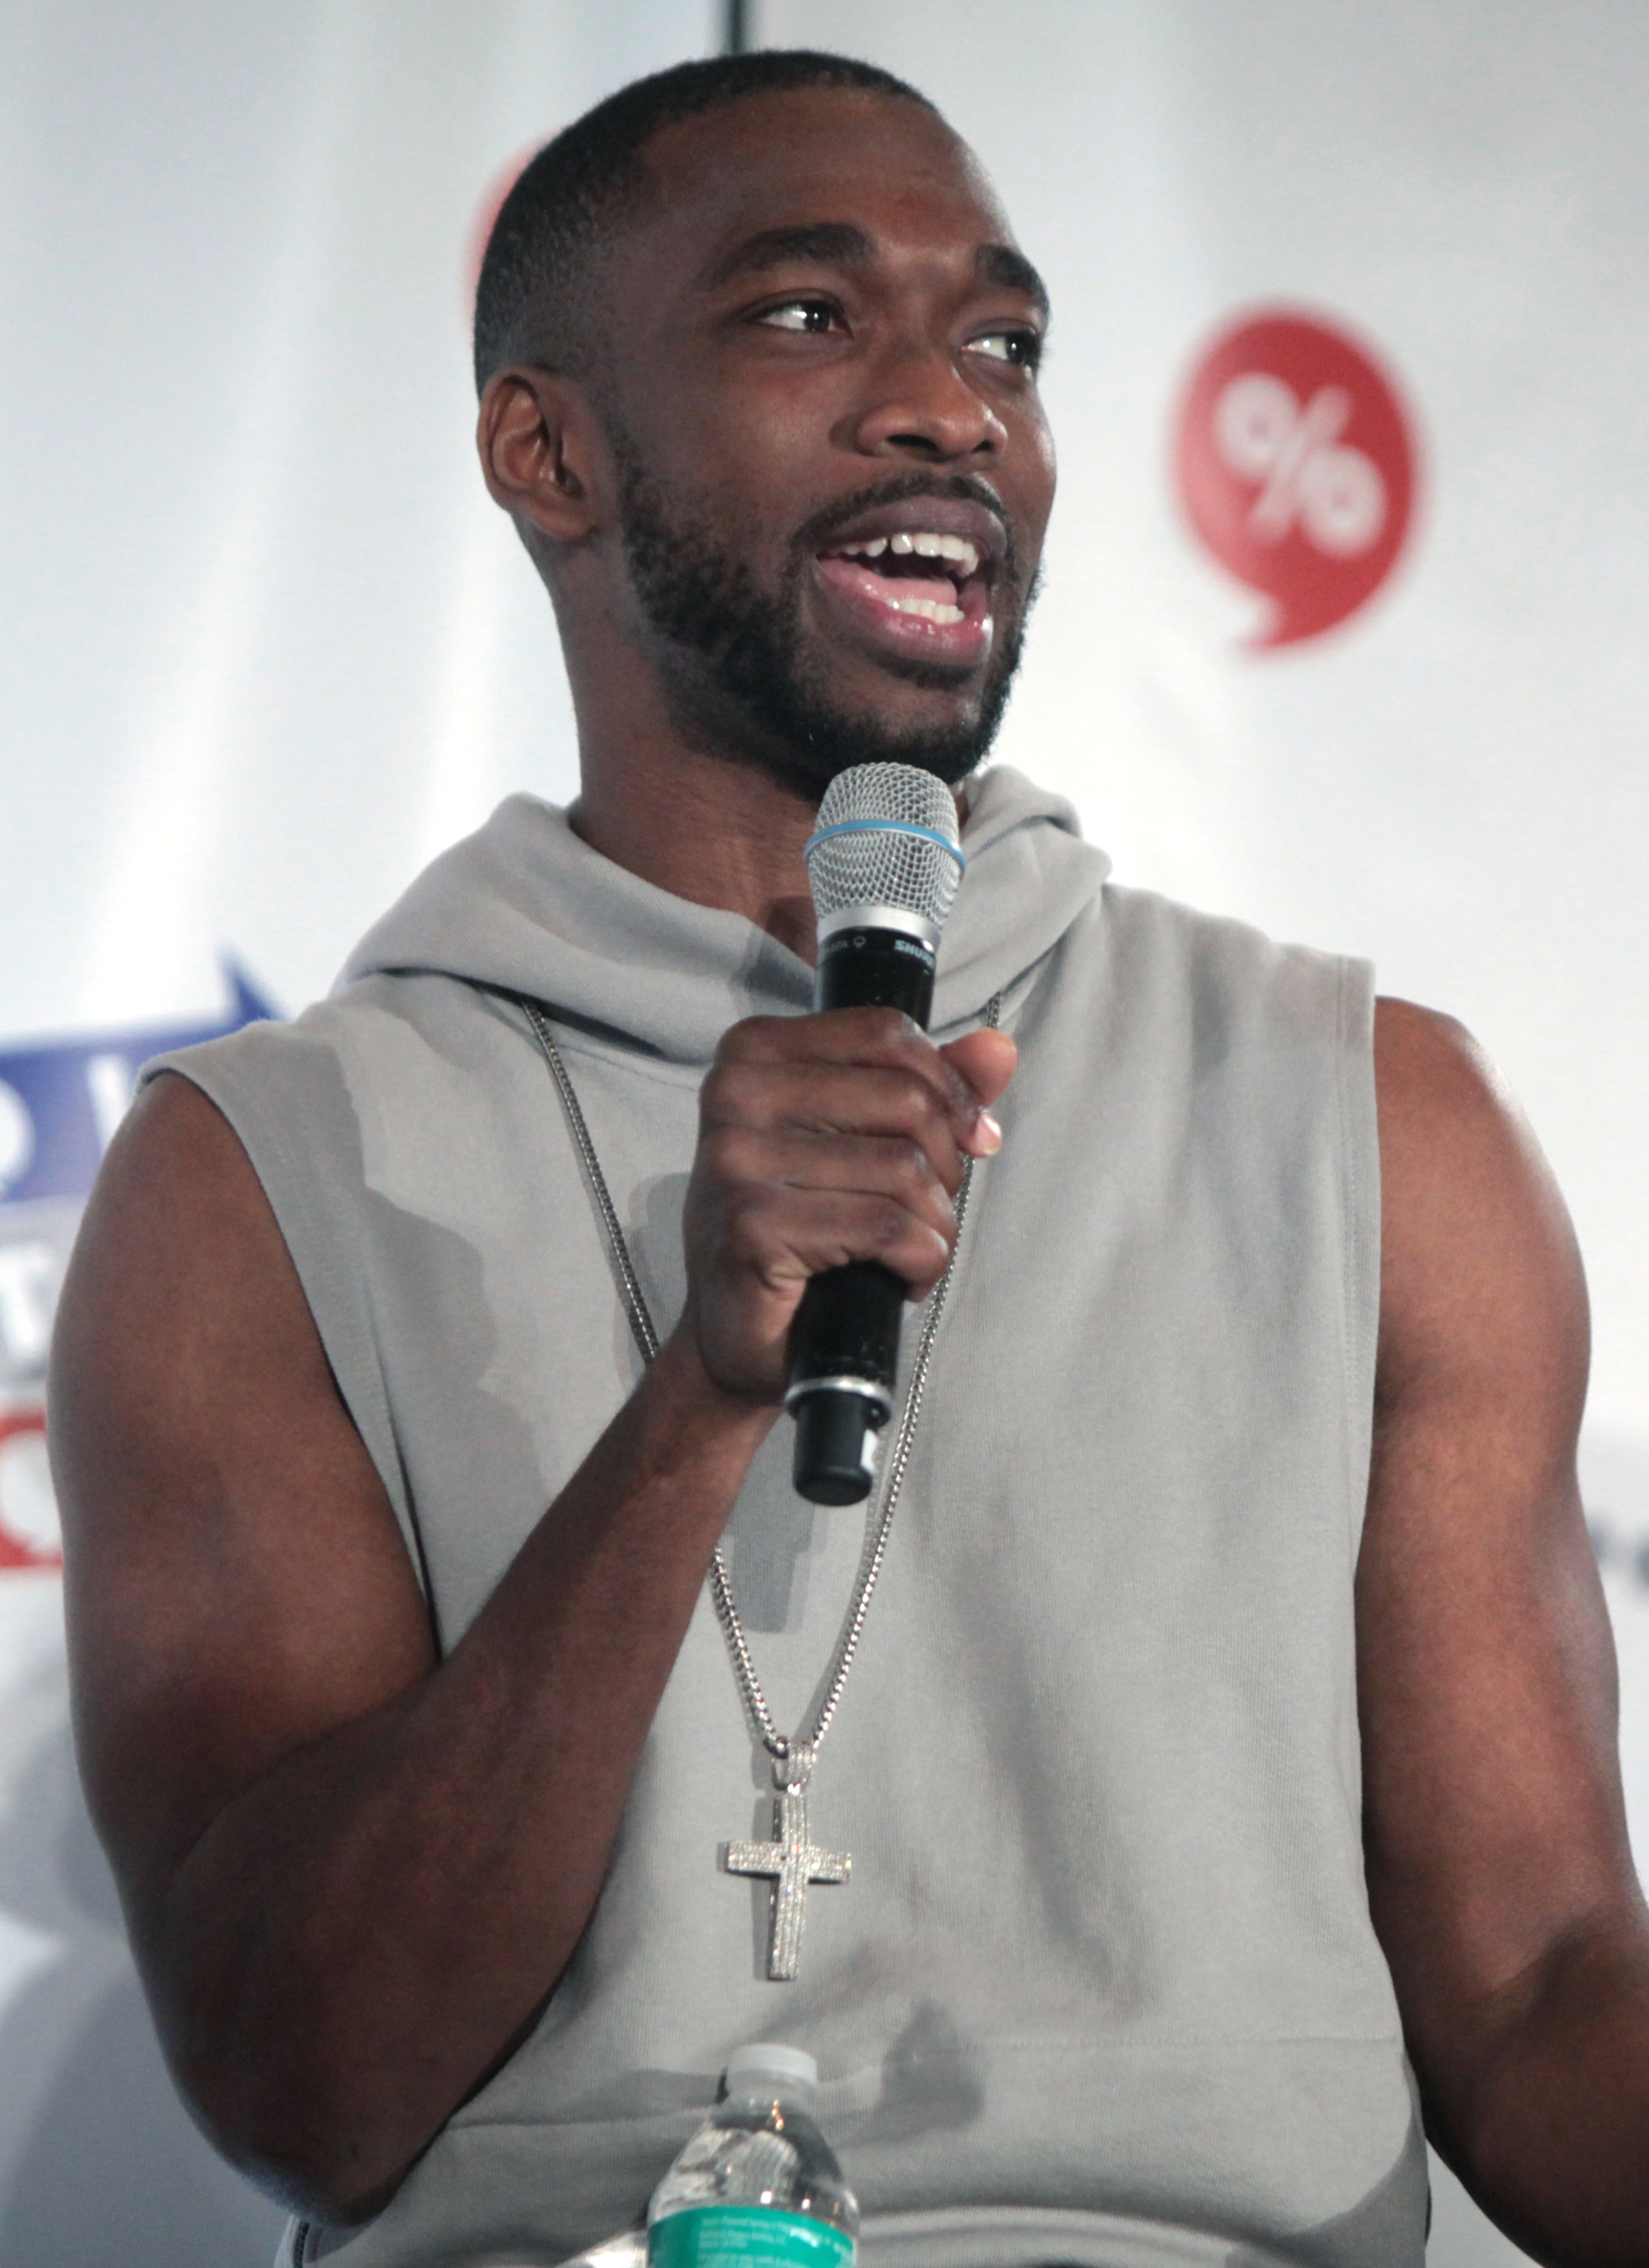 The 30-year old son of father (?) and mother(?) Jay Pharoah in 2018 photo. Jay Pharoah earned a  million dollar salary - leaving the net worth at 1.5 million in 2018